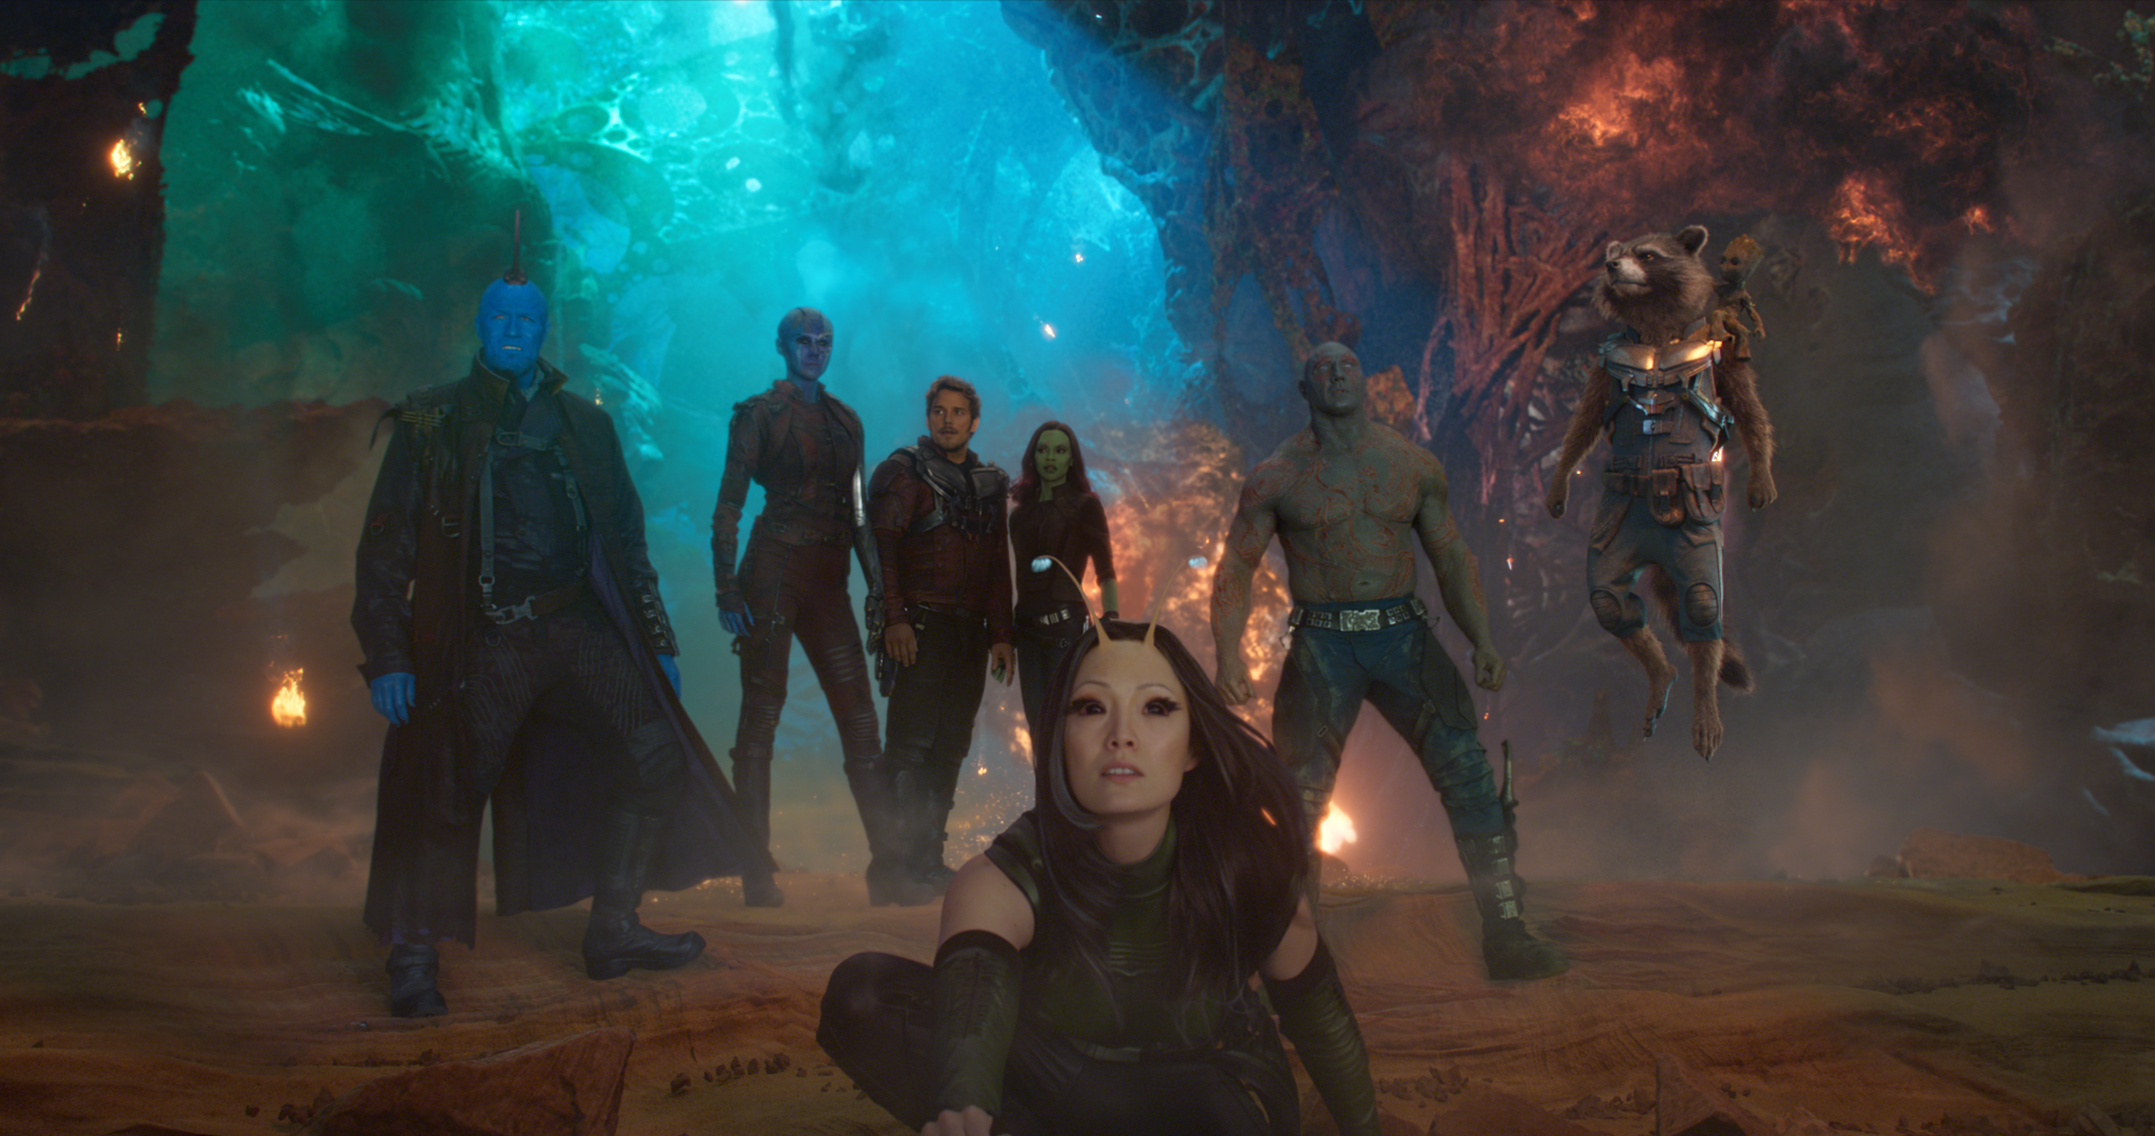 https://cinemaplanet.pt/wp-content/uploads/2017/04/guardians-of-the-galaxy-2.jpg